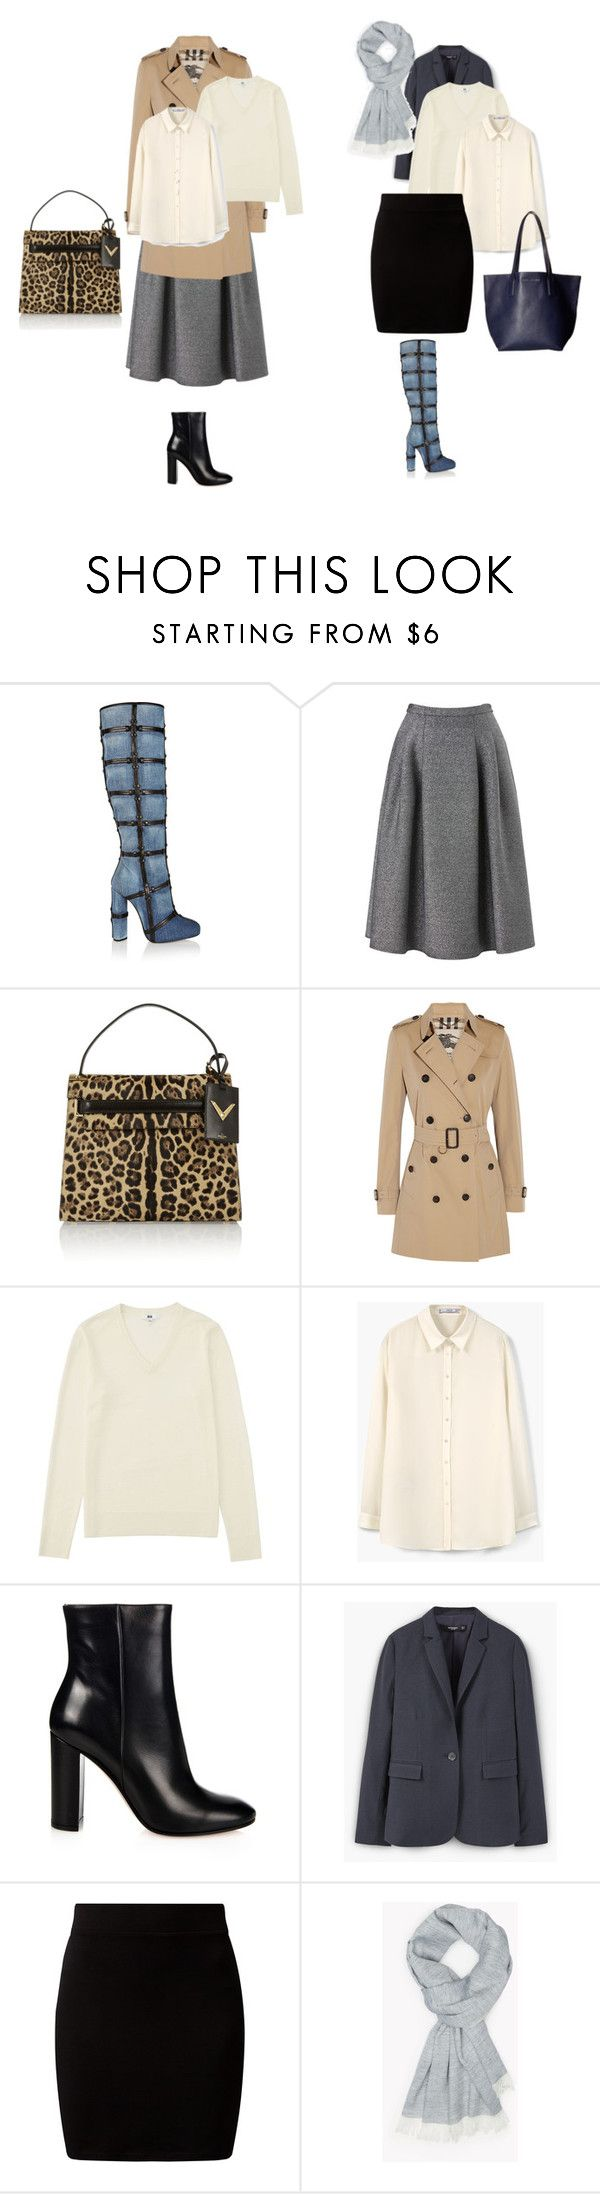 """""""сумка и сапоги Ксения"""" by dark-cashmere ❤ liked on Polyvore featuring Tom Ford, Phase Eight, Valentino, Burberry, Uniqlo, MANGO, Gianvito Rossi, New Look, Theory and Marc Jacobs"""